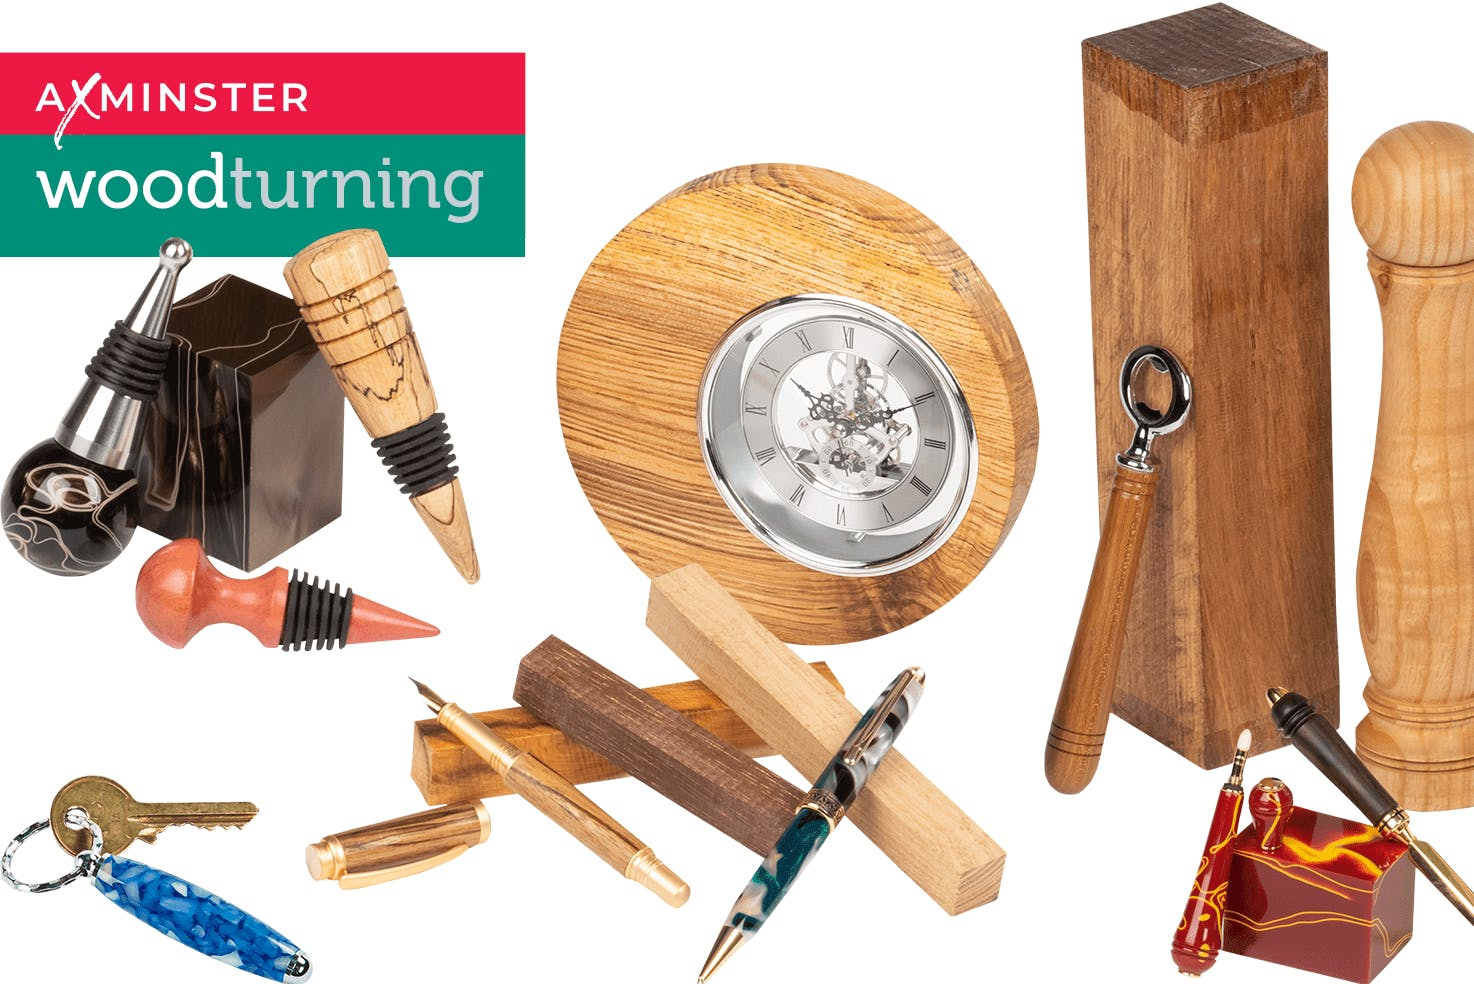 Woodturning pen and project kits